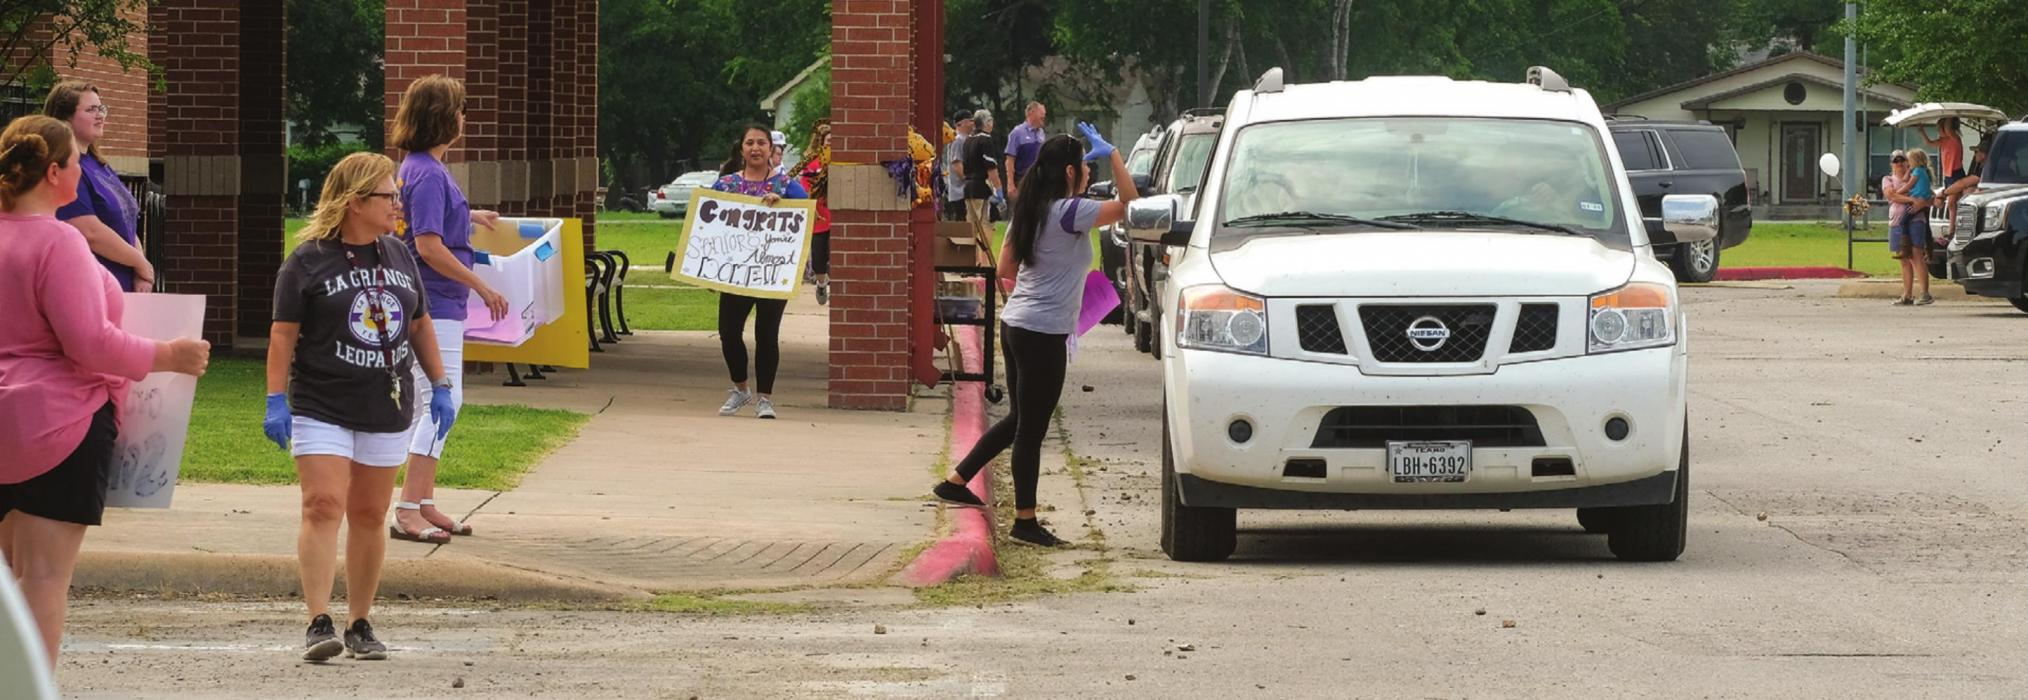 Seniors at La Grange High School picked up their graduation caps and gowns in a drive-through at the school Tuesday, May 5. For most of the students, it was their first visit to campus since spring break, when the school closed for the coronavirus. At the drive-through on Tuesday, teachers and school staff held up motivational signs for the soon-to-be graduates. La Grange ISD has not yet announced plans for a graduation ceremony. Seniors were told to expect a ceremony date in June. Photo by Andy Behlen